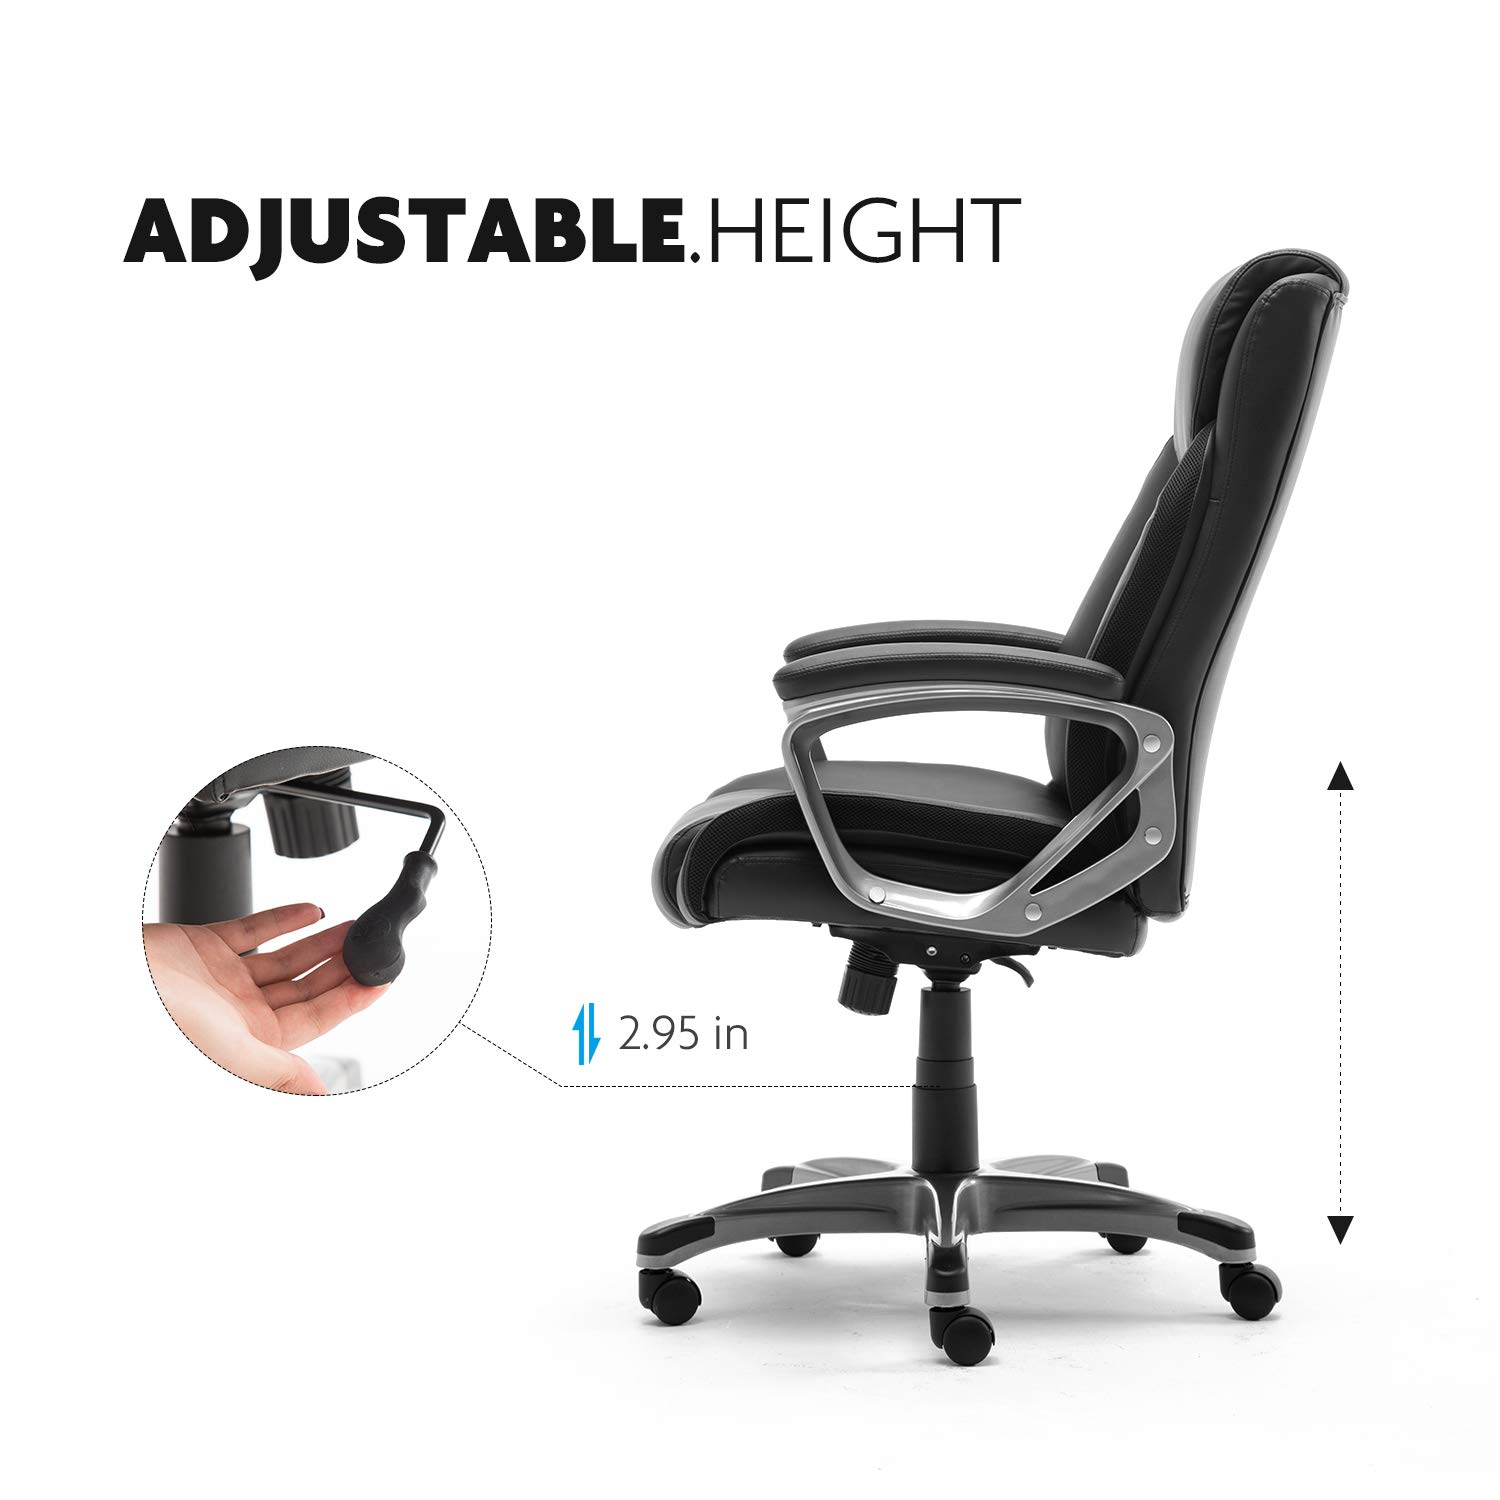 110/° Tilt Lock and Adjustable Lumbar Support CANMOV Ergonomic High Back Leather Office Chair Thick Padding Computer Desk Chair with 90/° Black